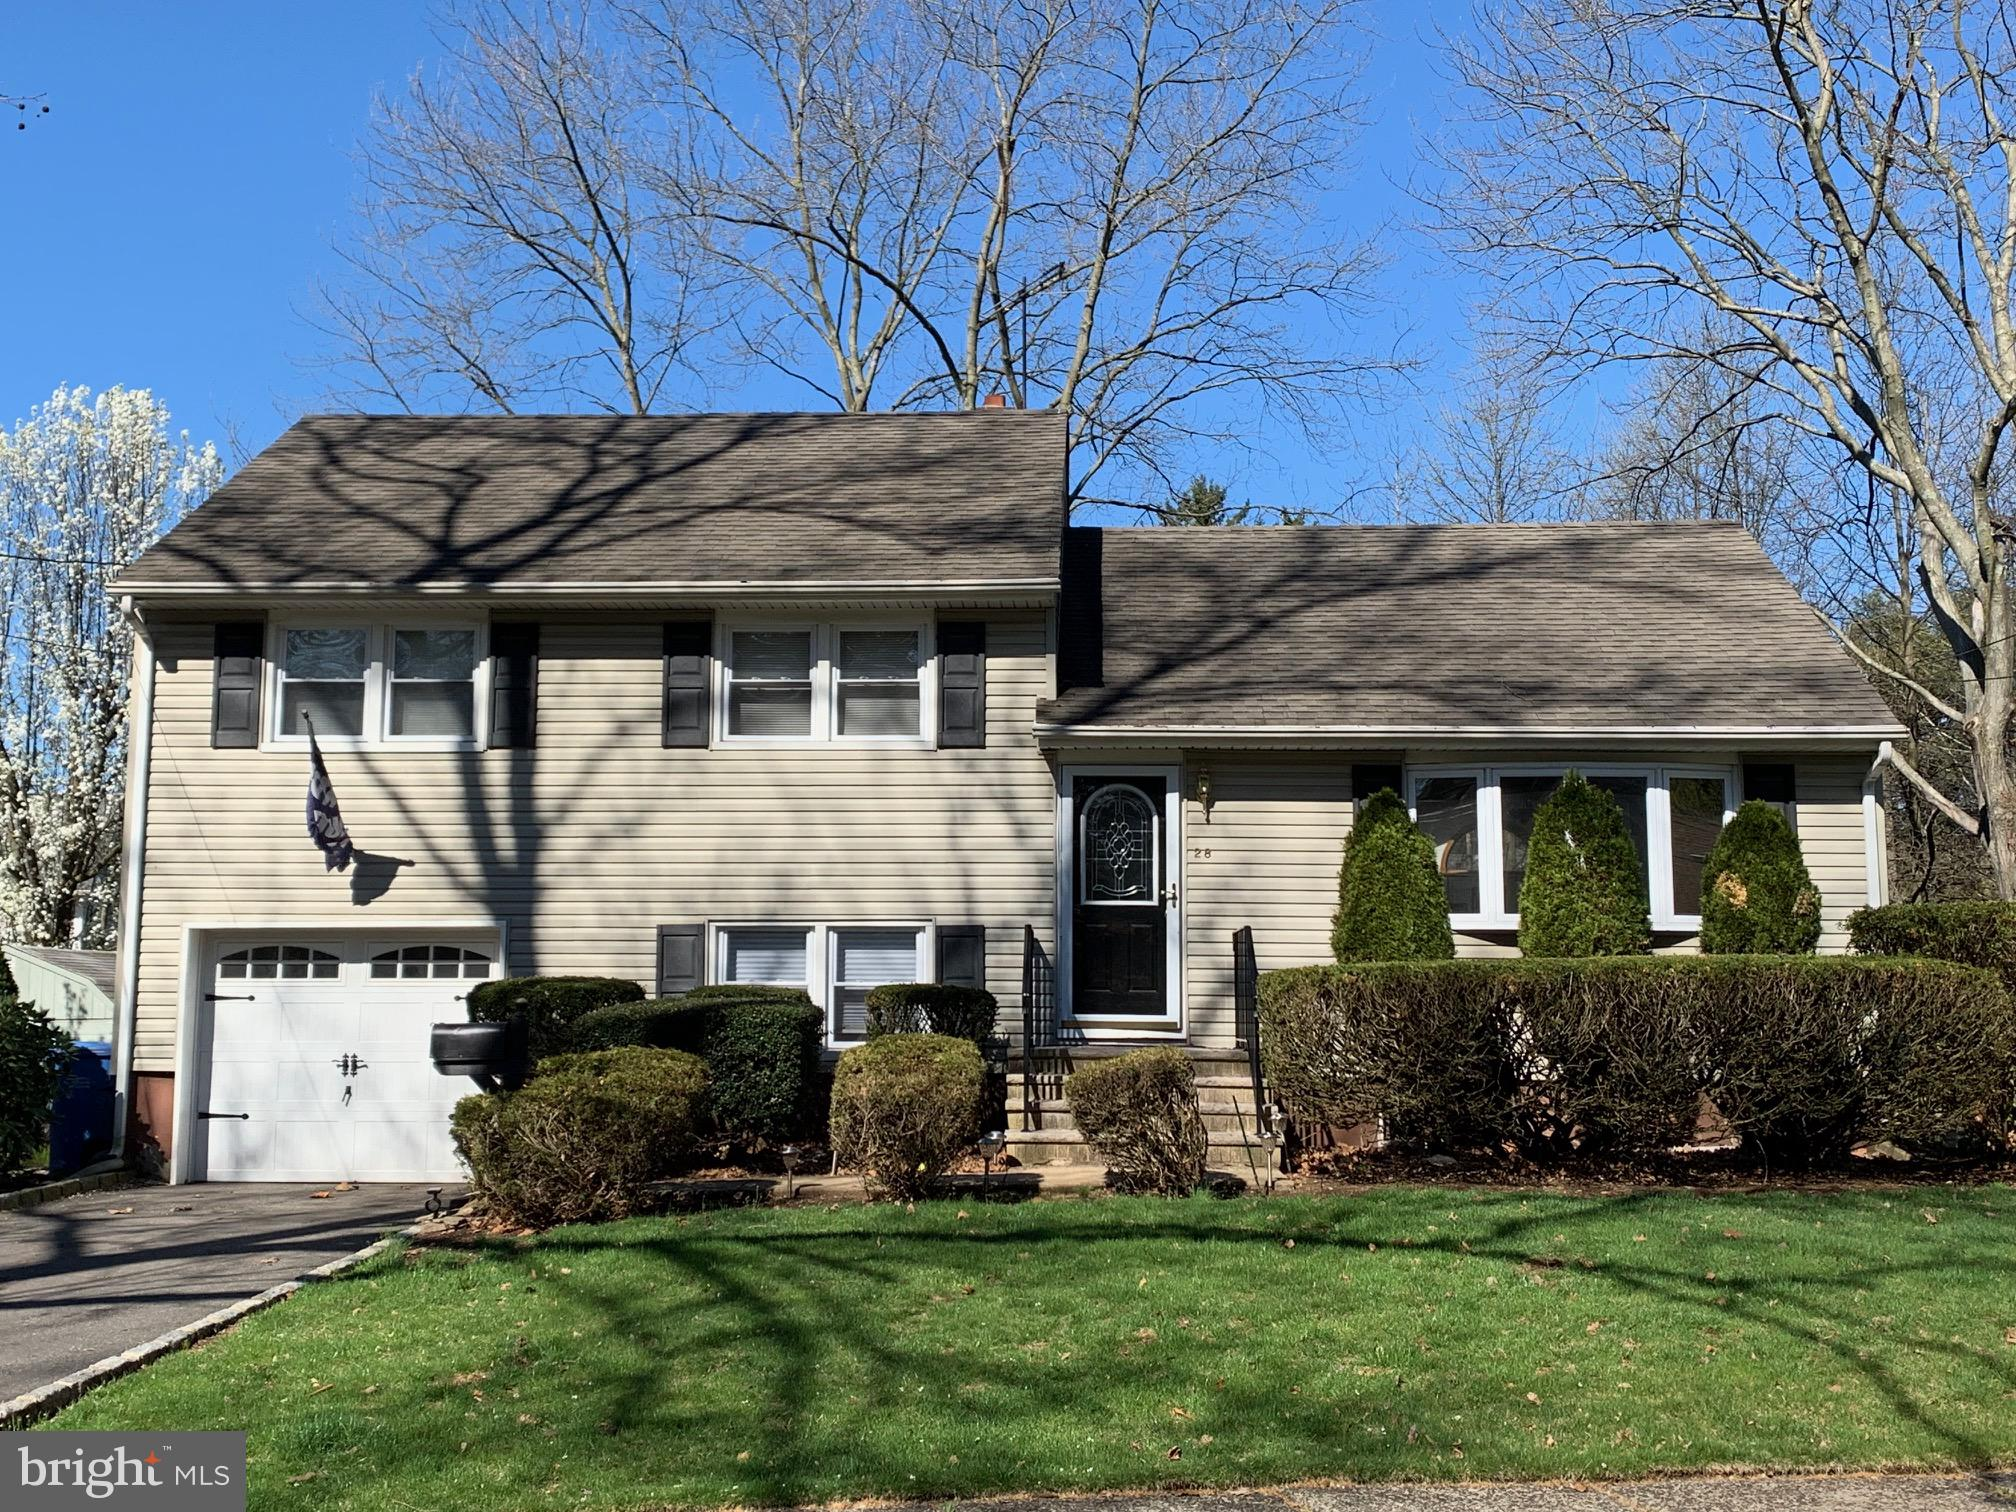 28 TURNER COURT, METUCHEN, NJ 08840